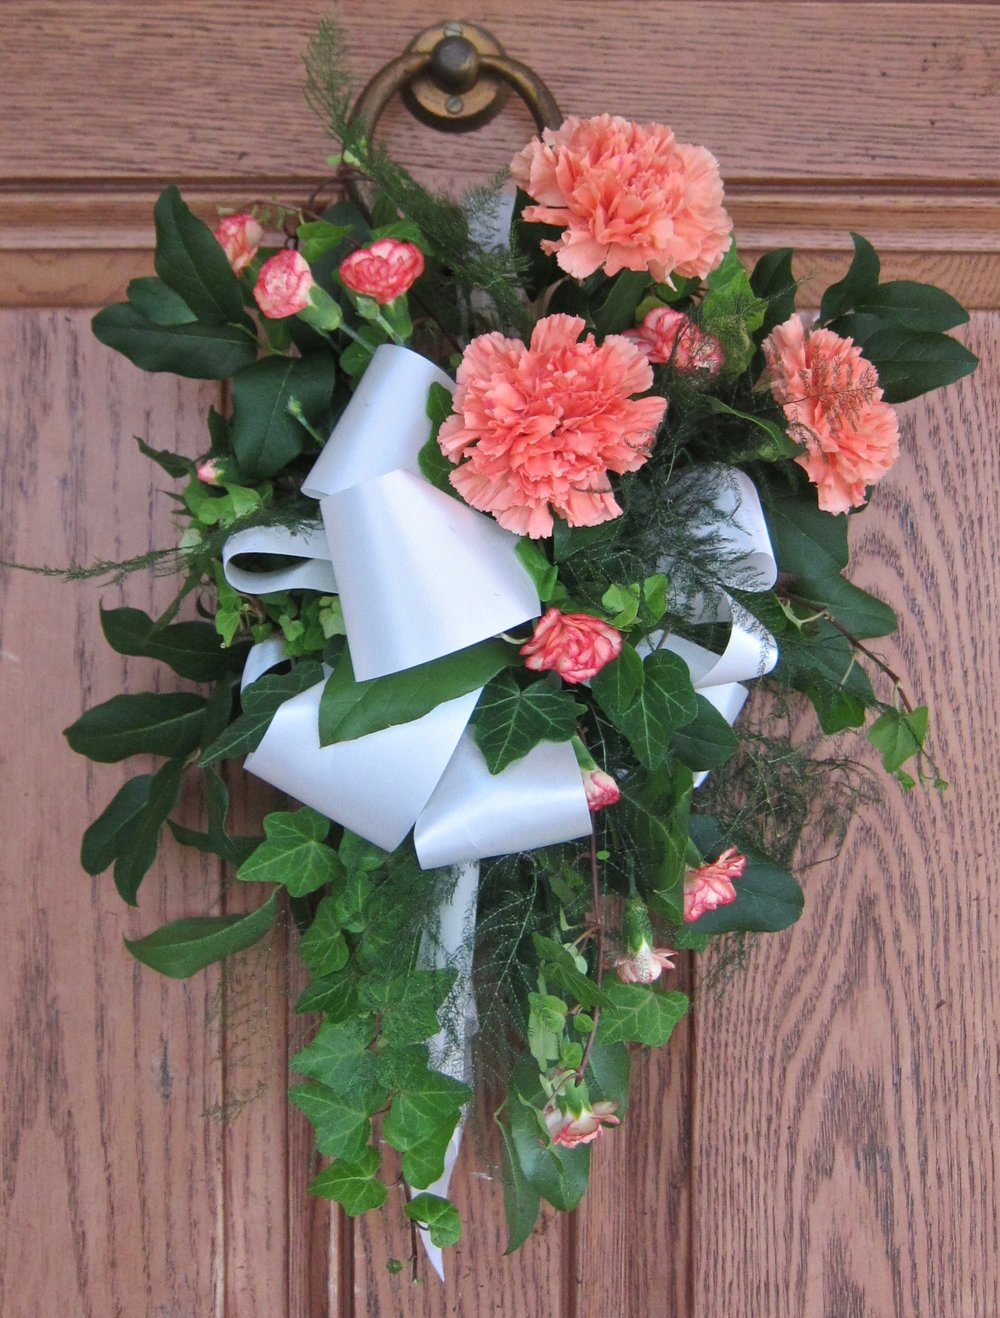 PEW BOUQUET OF mini and large carnations with ivy and ferns.